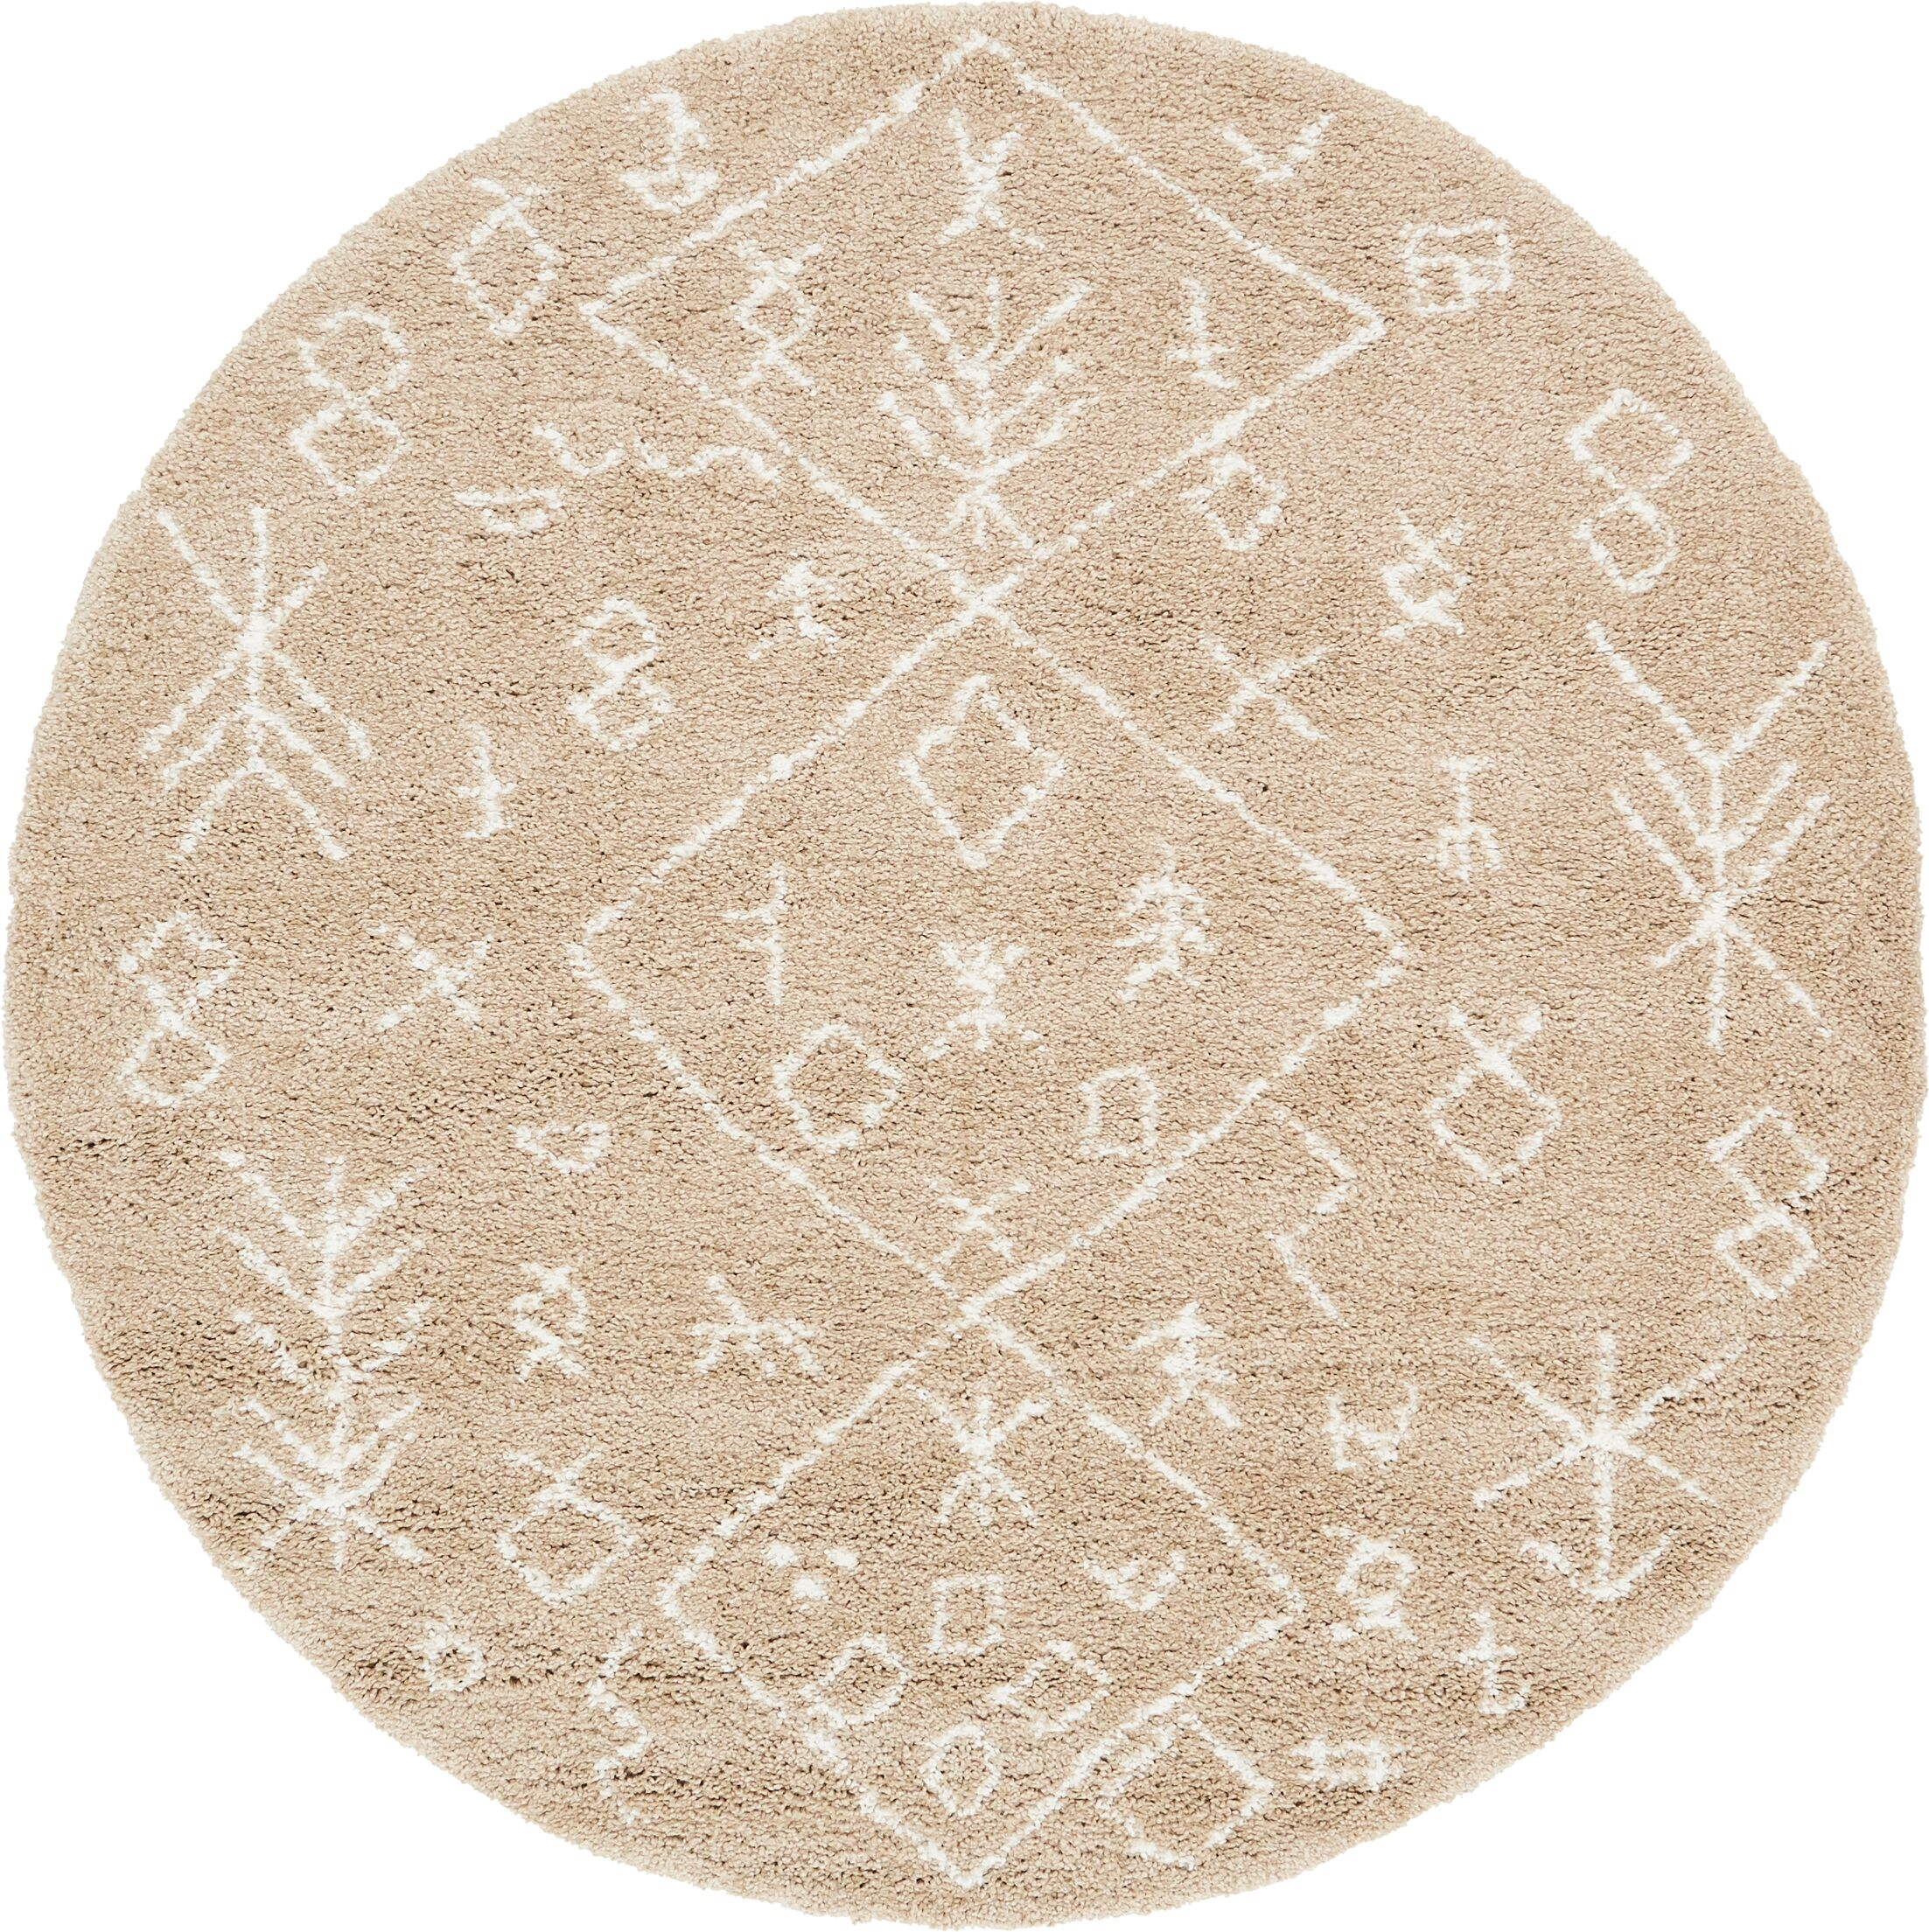 France Machine woven Taupe Area Rug Rug Size: Round 8'